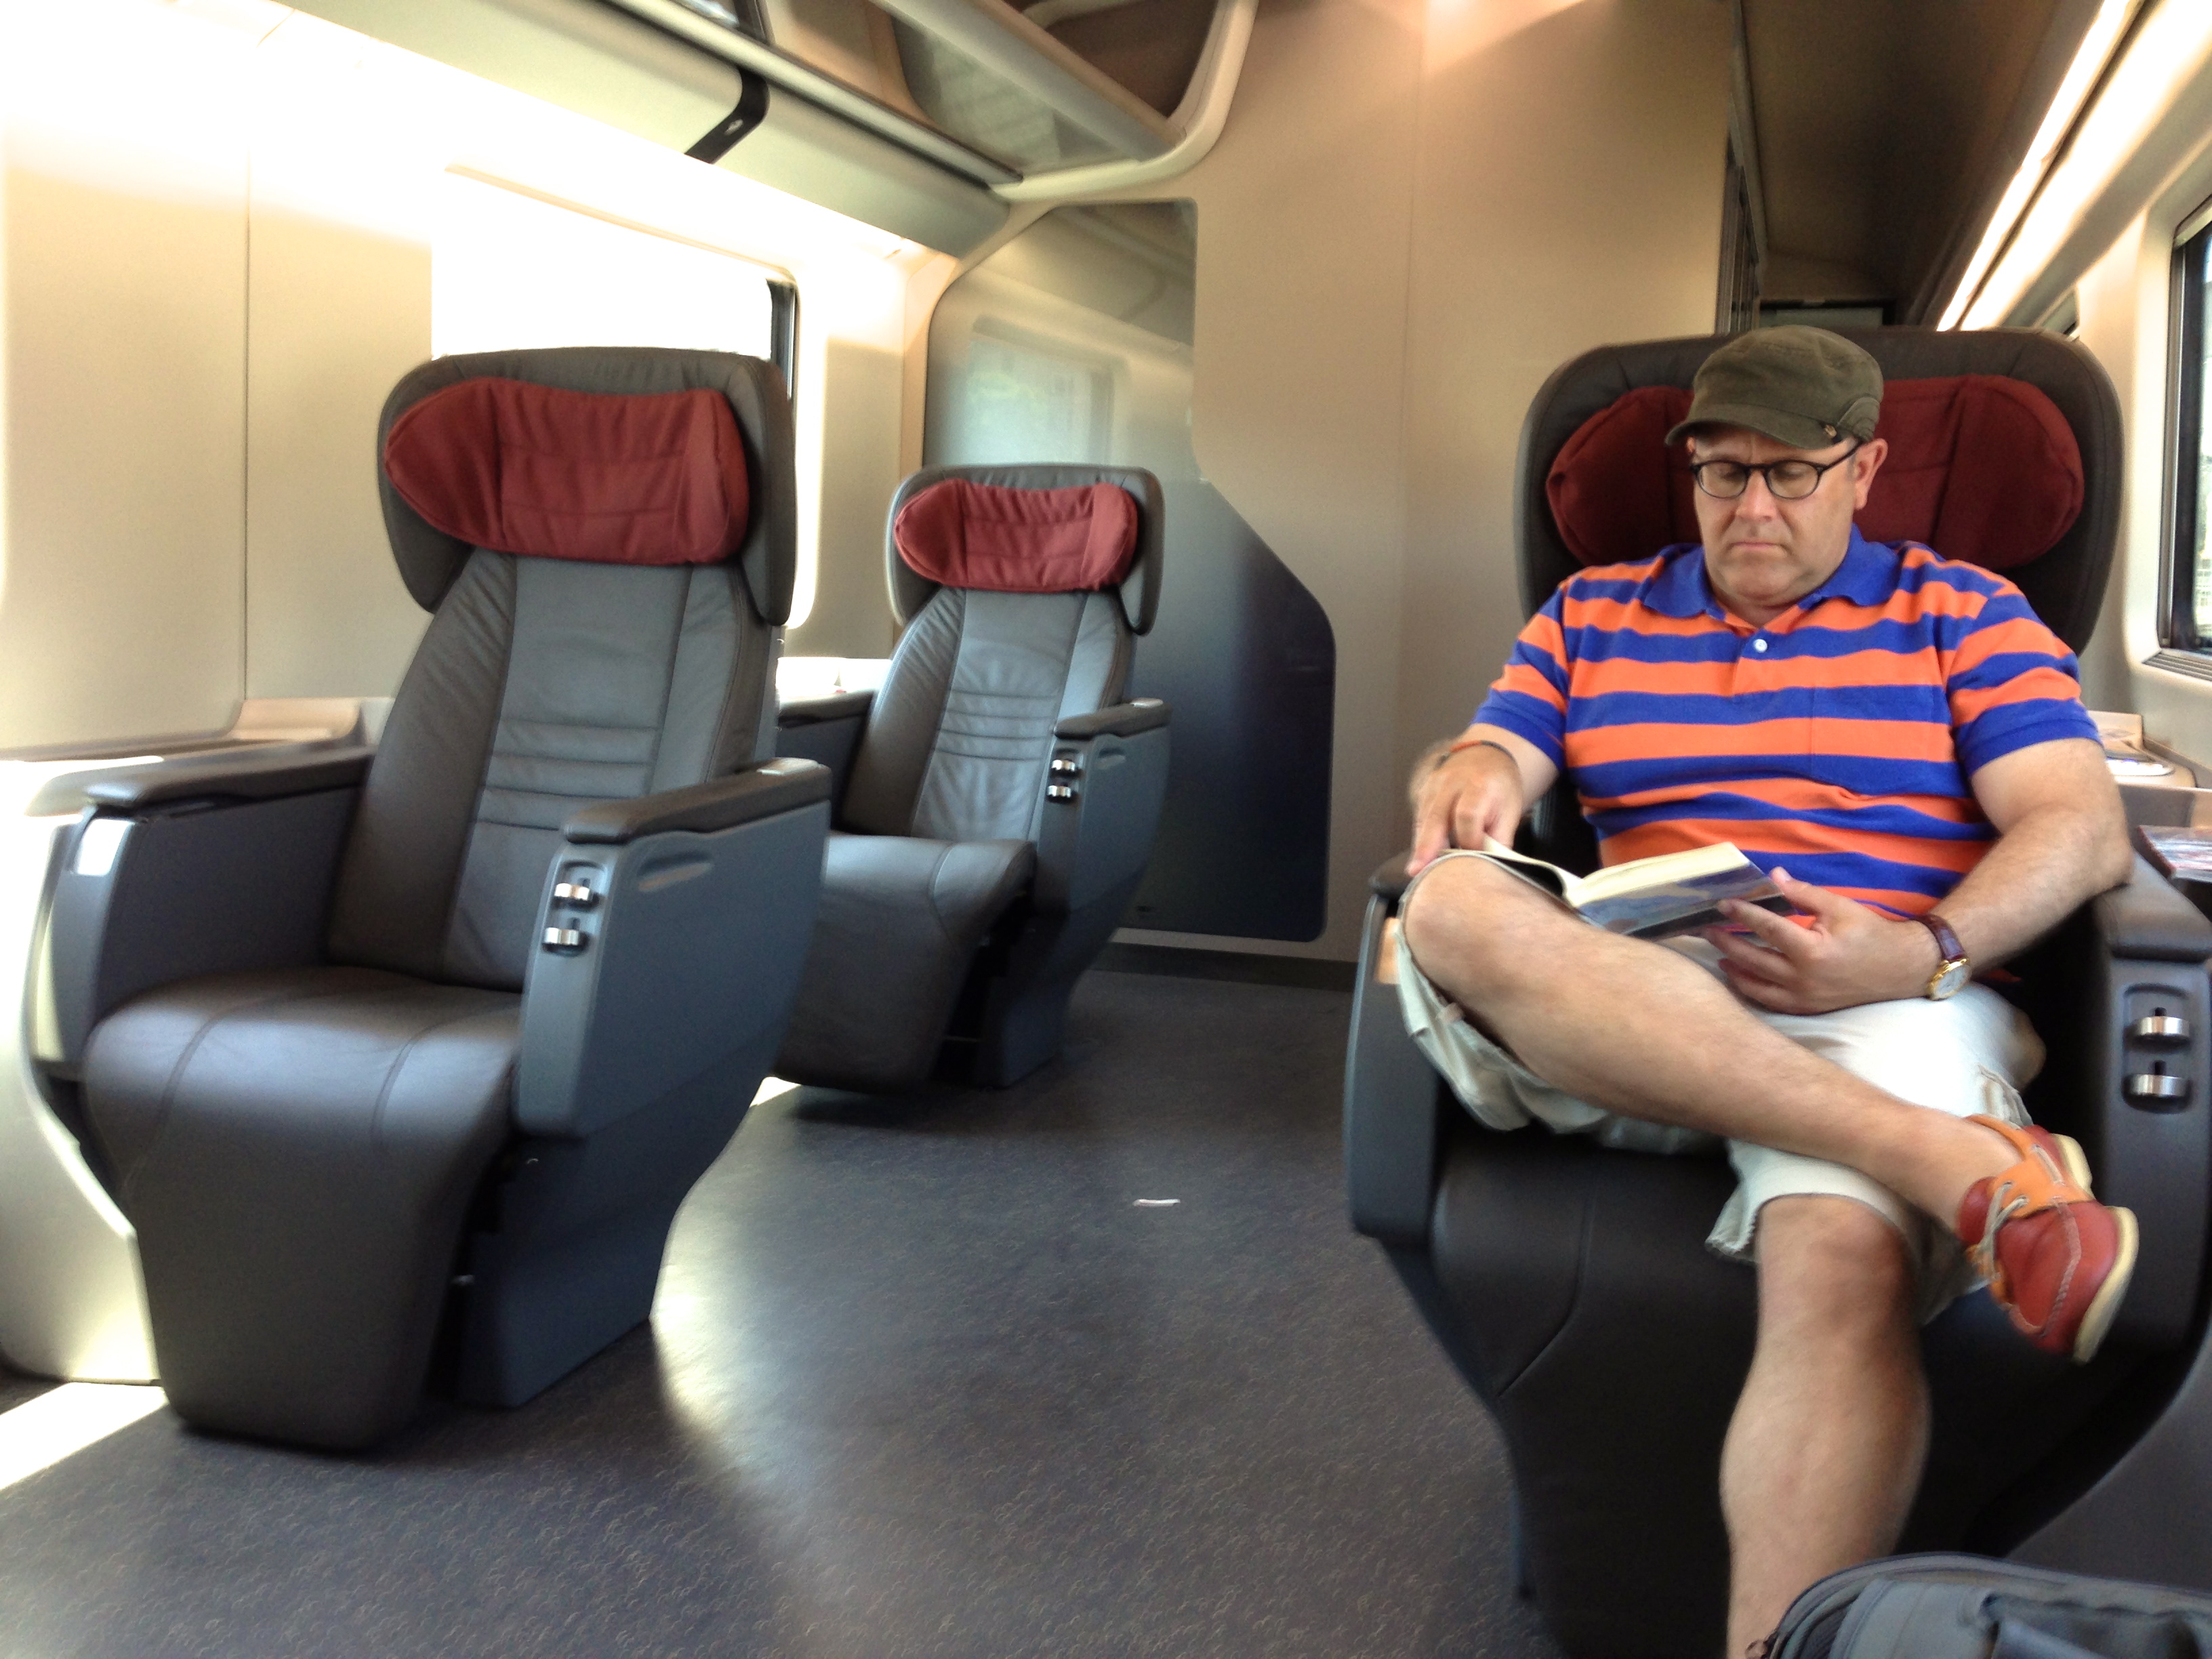 Trenitalia Frecciarossa Executive Class Seat Legroom